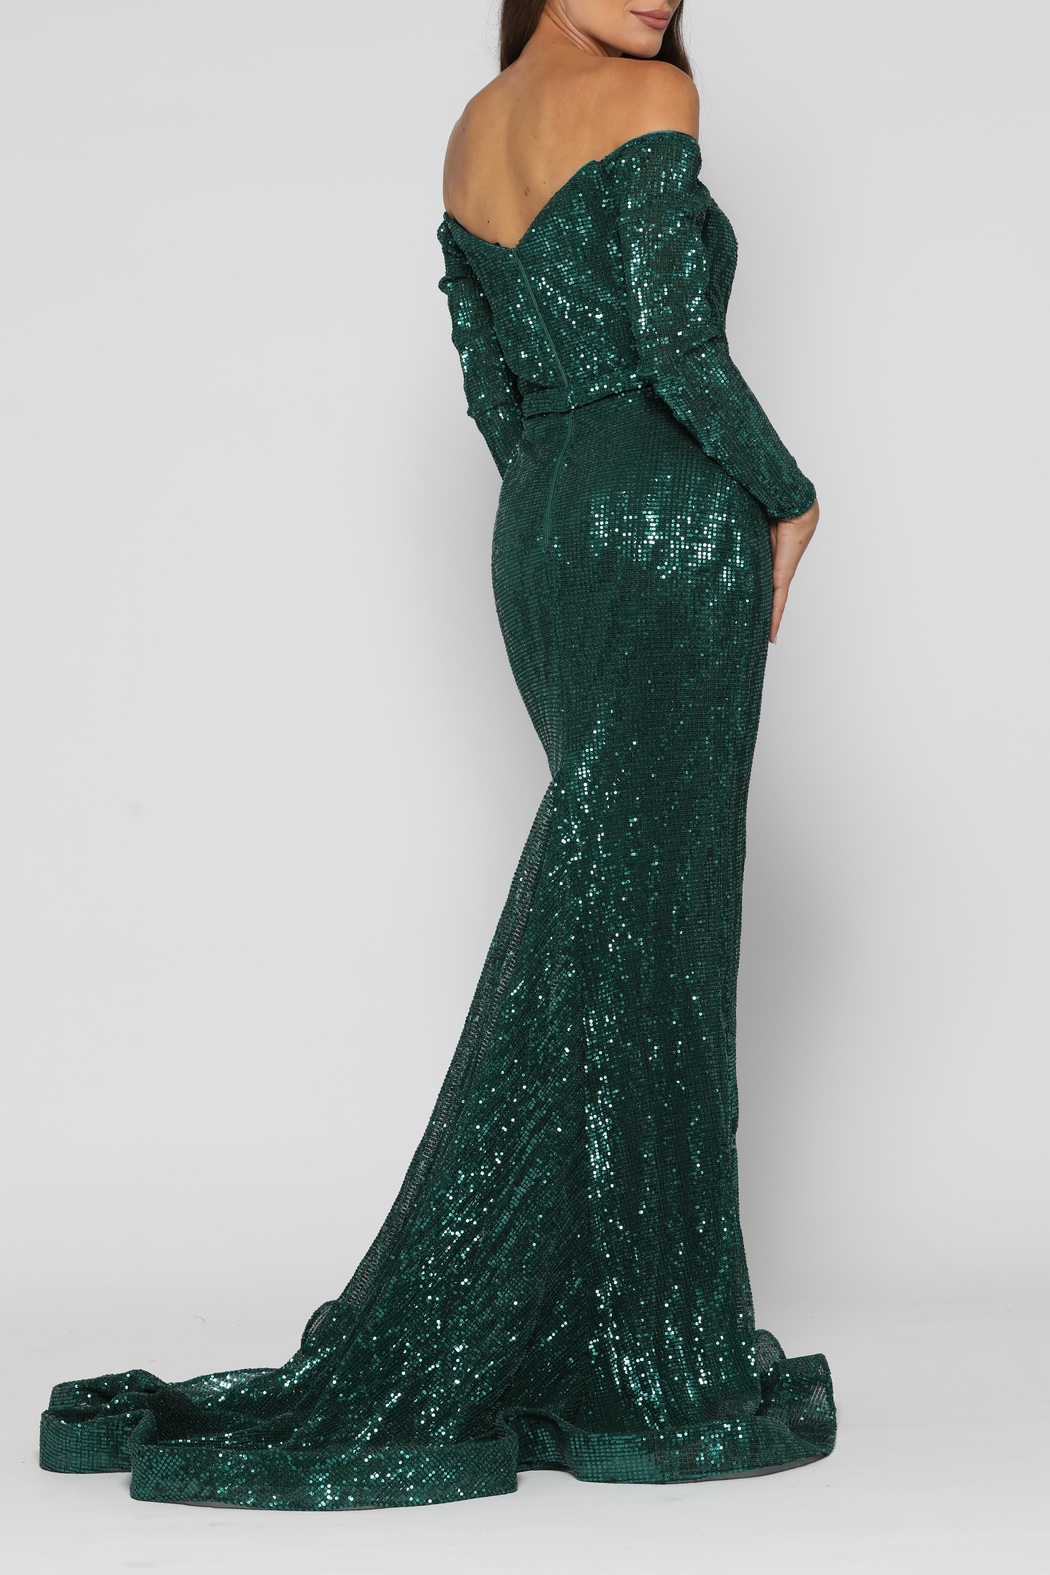 YSS the Label Veronica Gown Emerald - Side Cropped Image